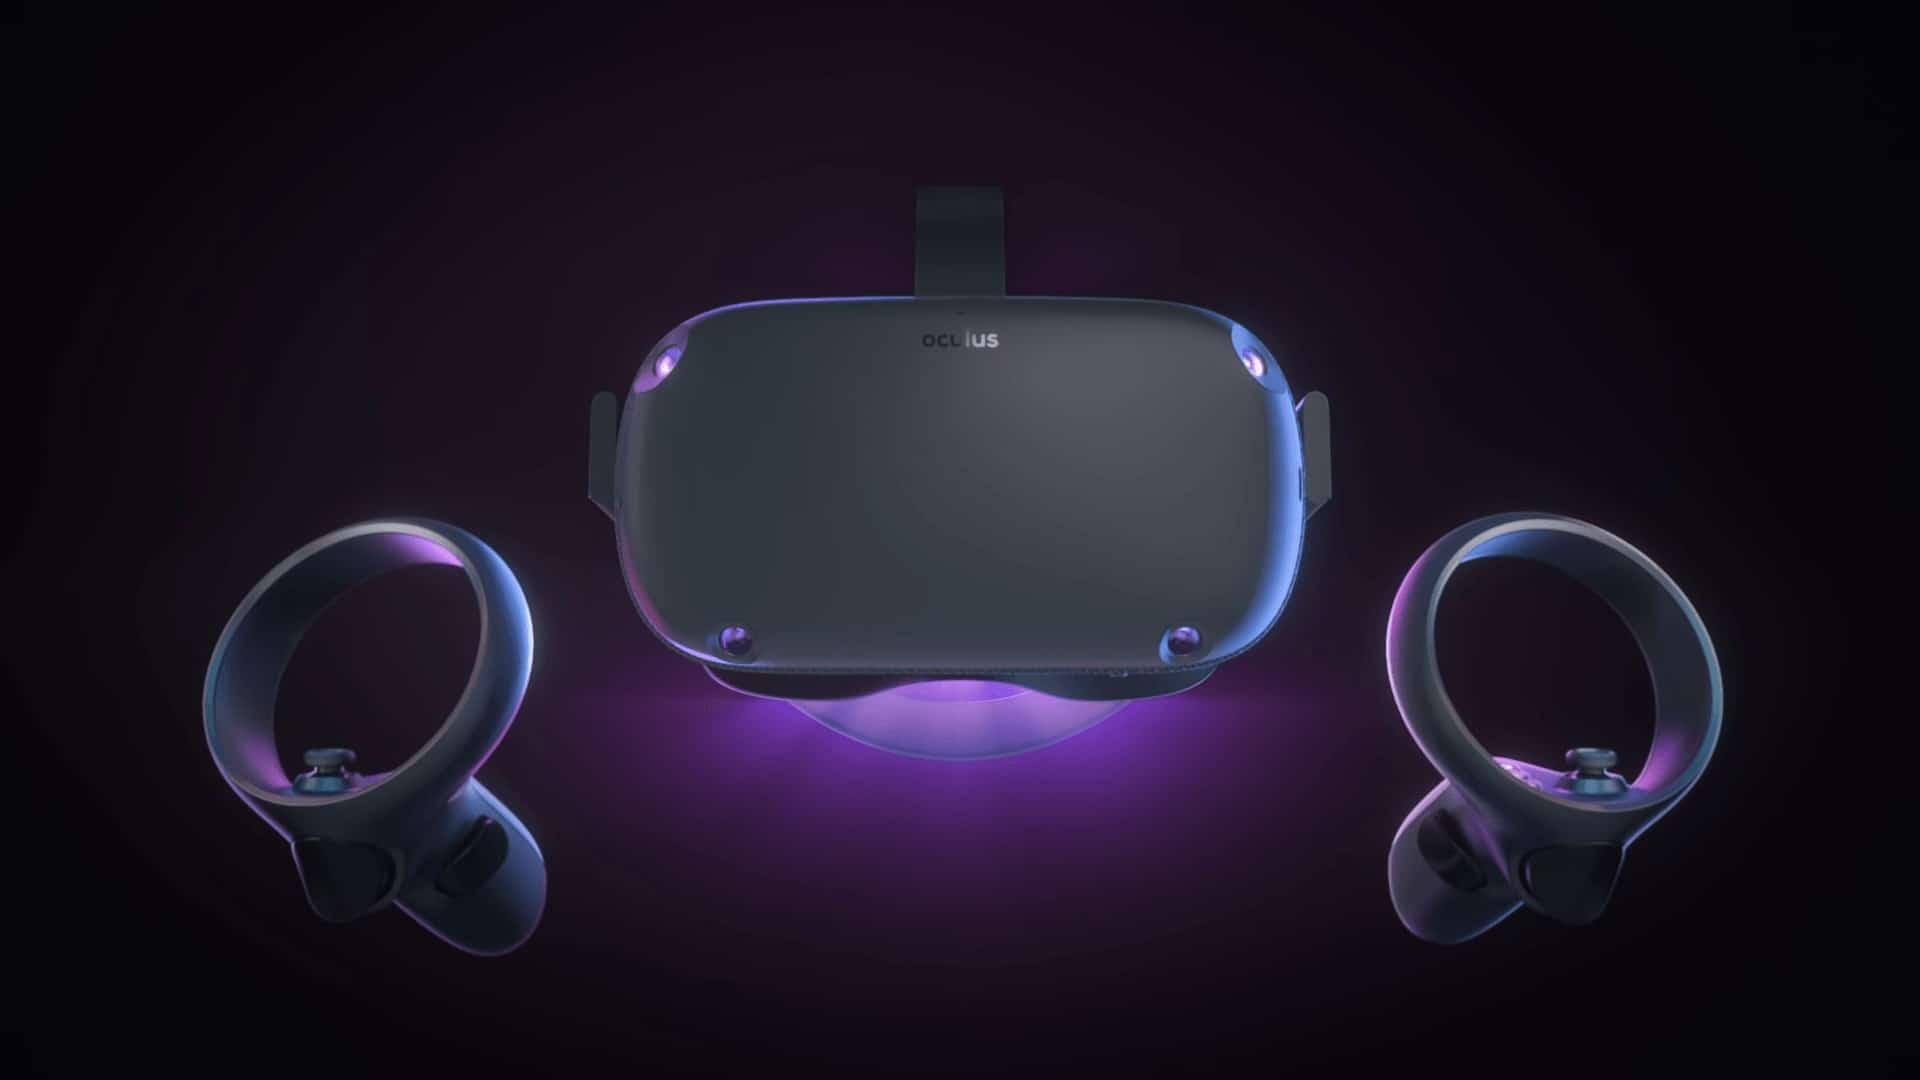 10 of the Best Oculus Quest VR Apps to Experience in 2020